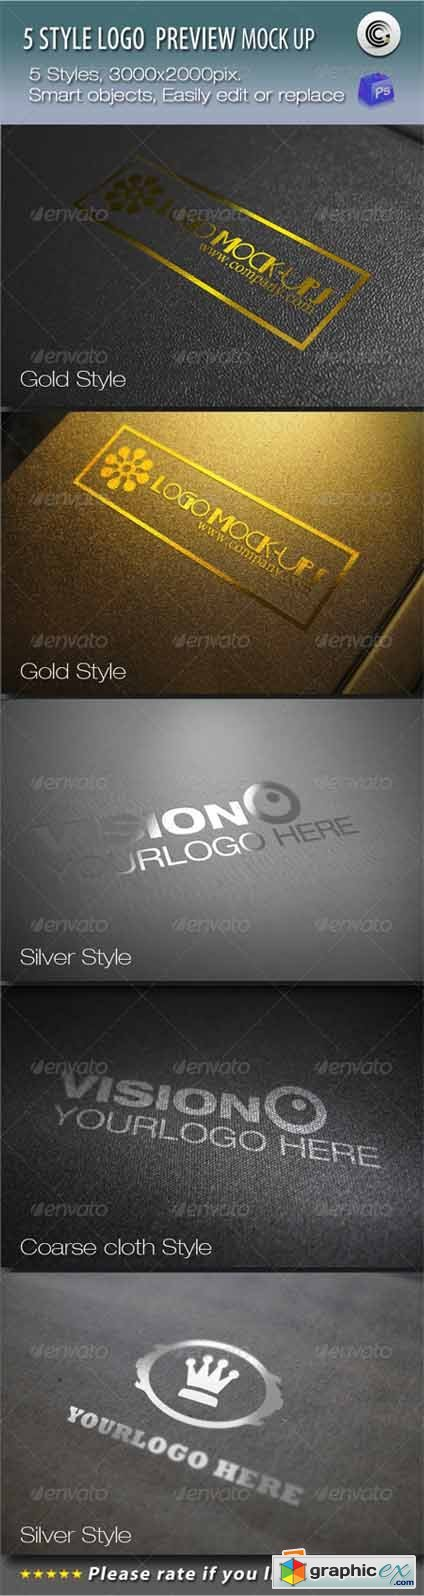 5 Styles Logo Preview Mock-ups 683452